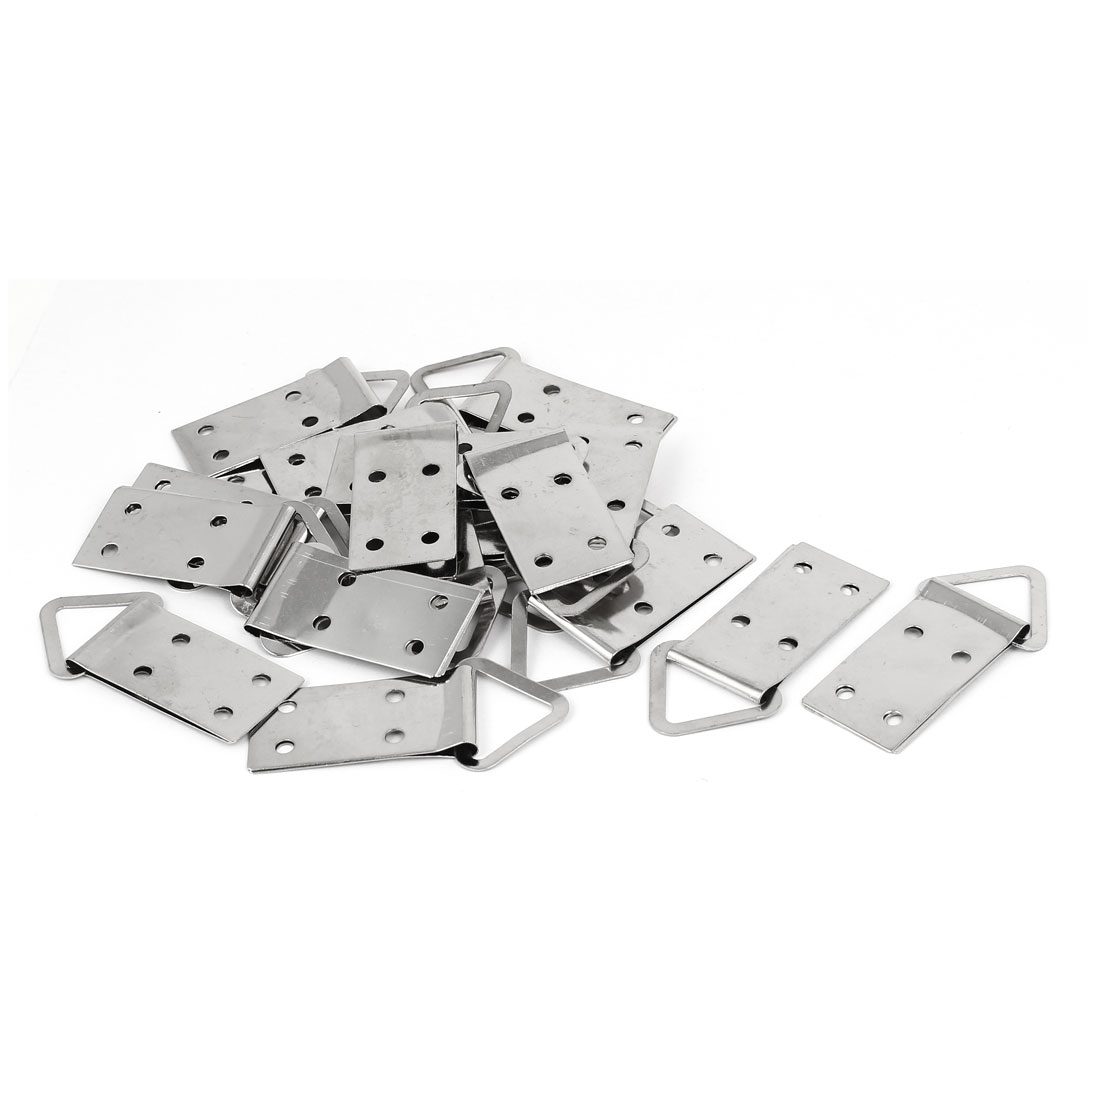 4 Hole Triangle D-Ring Picture Photo Frame Hanging Metal Strap Hanger 20PCS